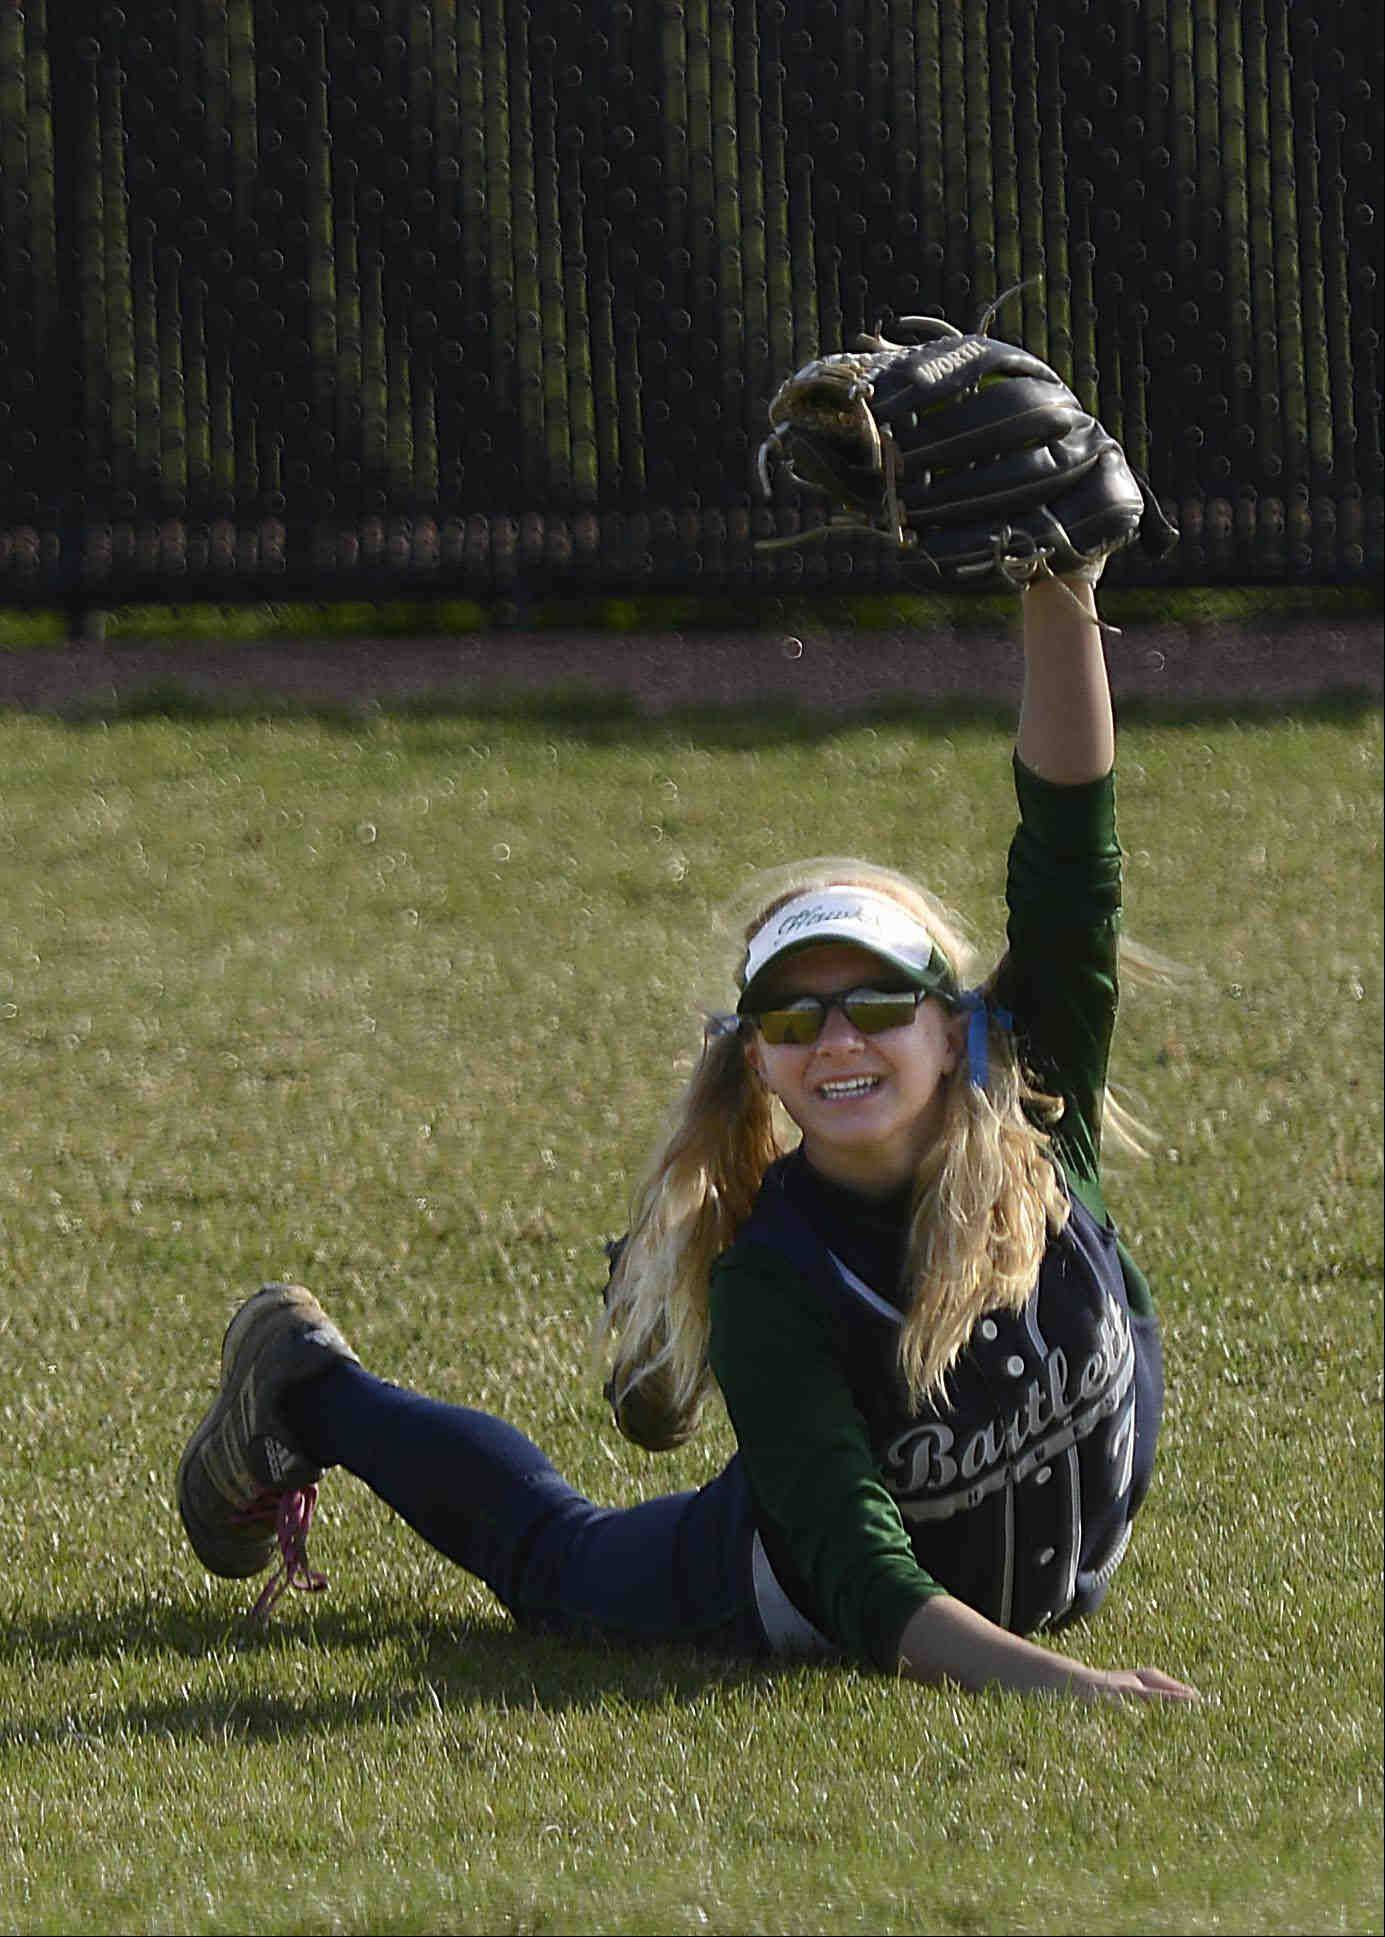 Bartlett's Rachel Odolski shows the umpire the ball after a diving catch Monday in St. Charles.